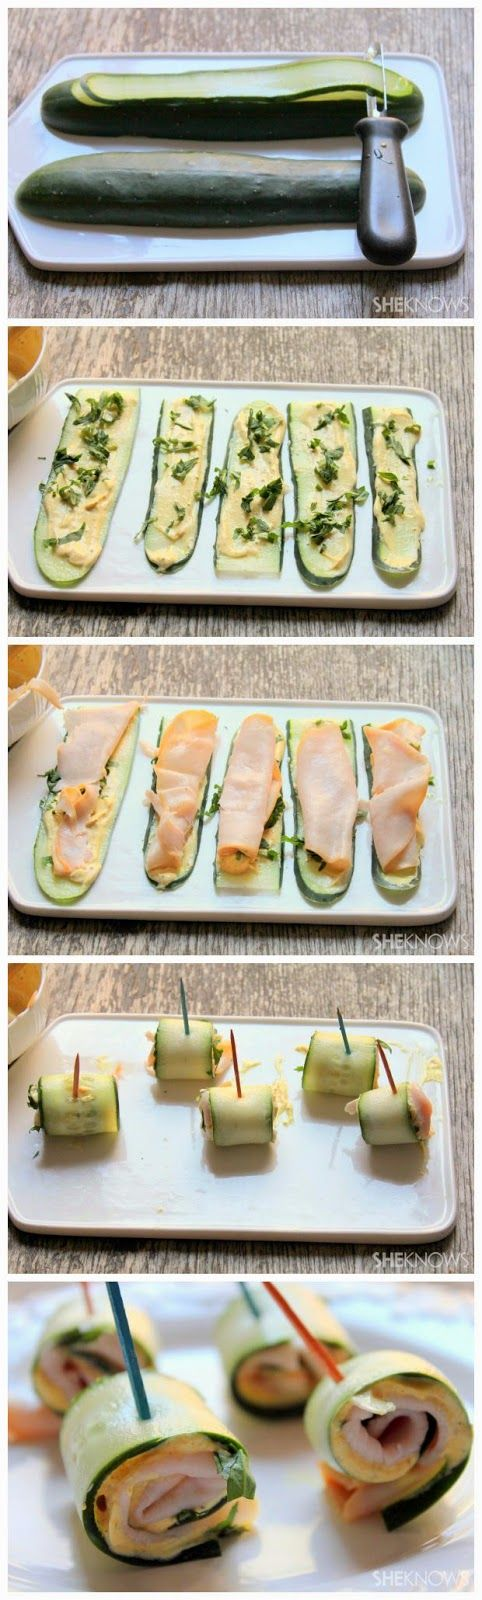 Sick of boring work lunches? Pack these Cucumber roll-ups with hummus and turkey